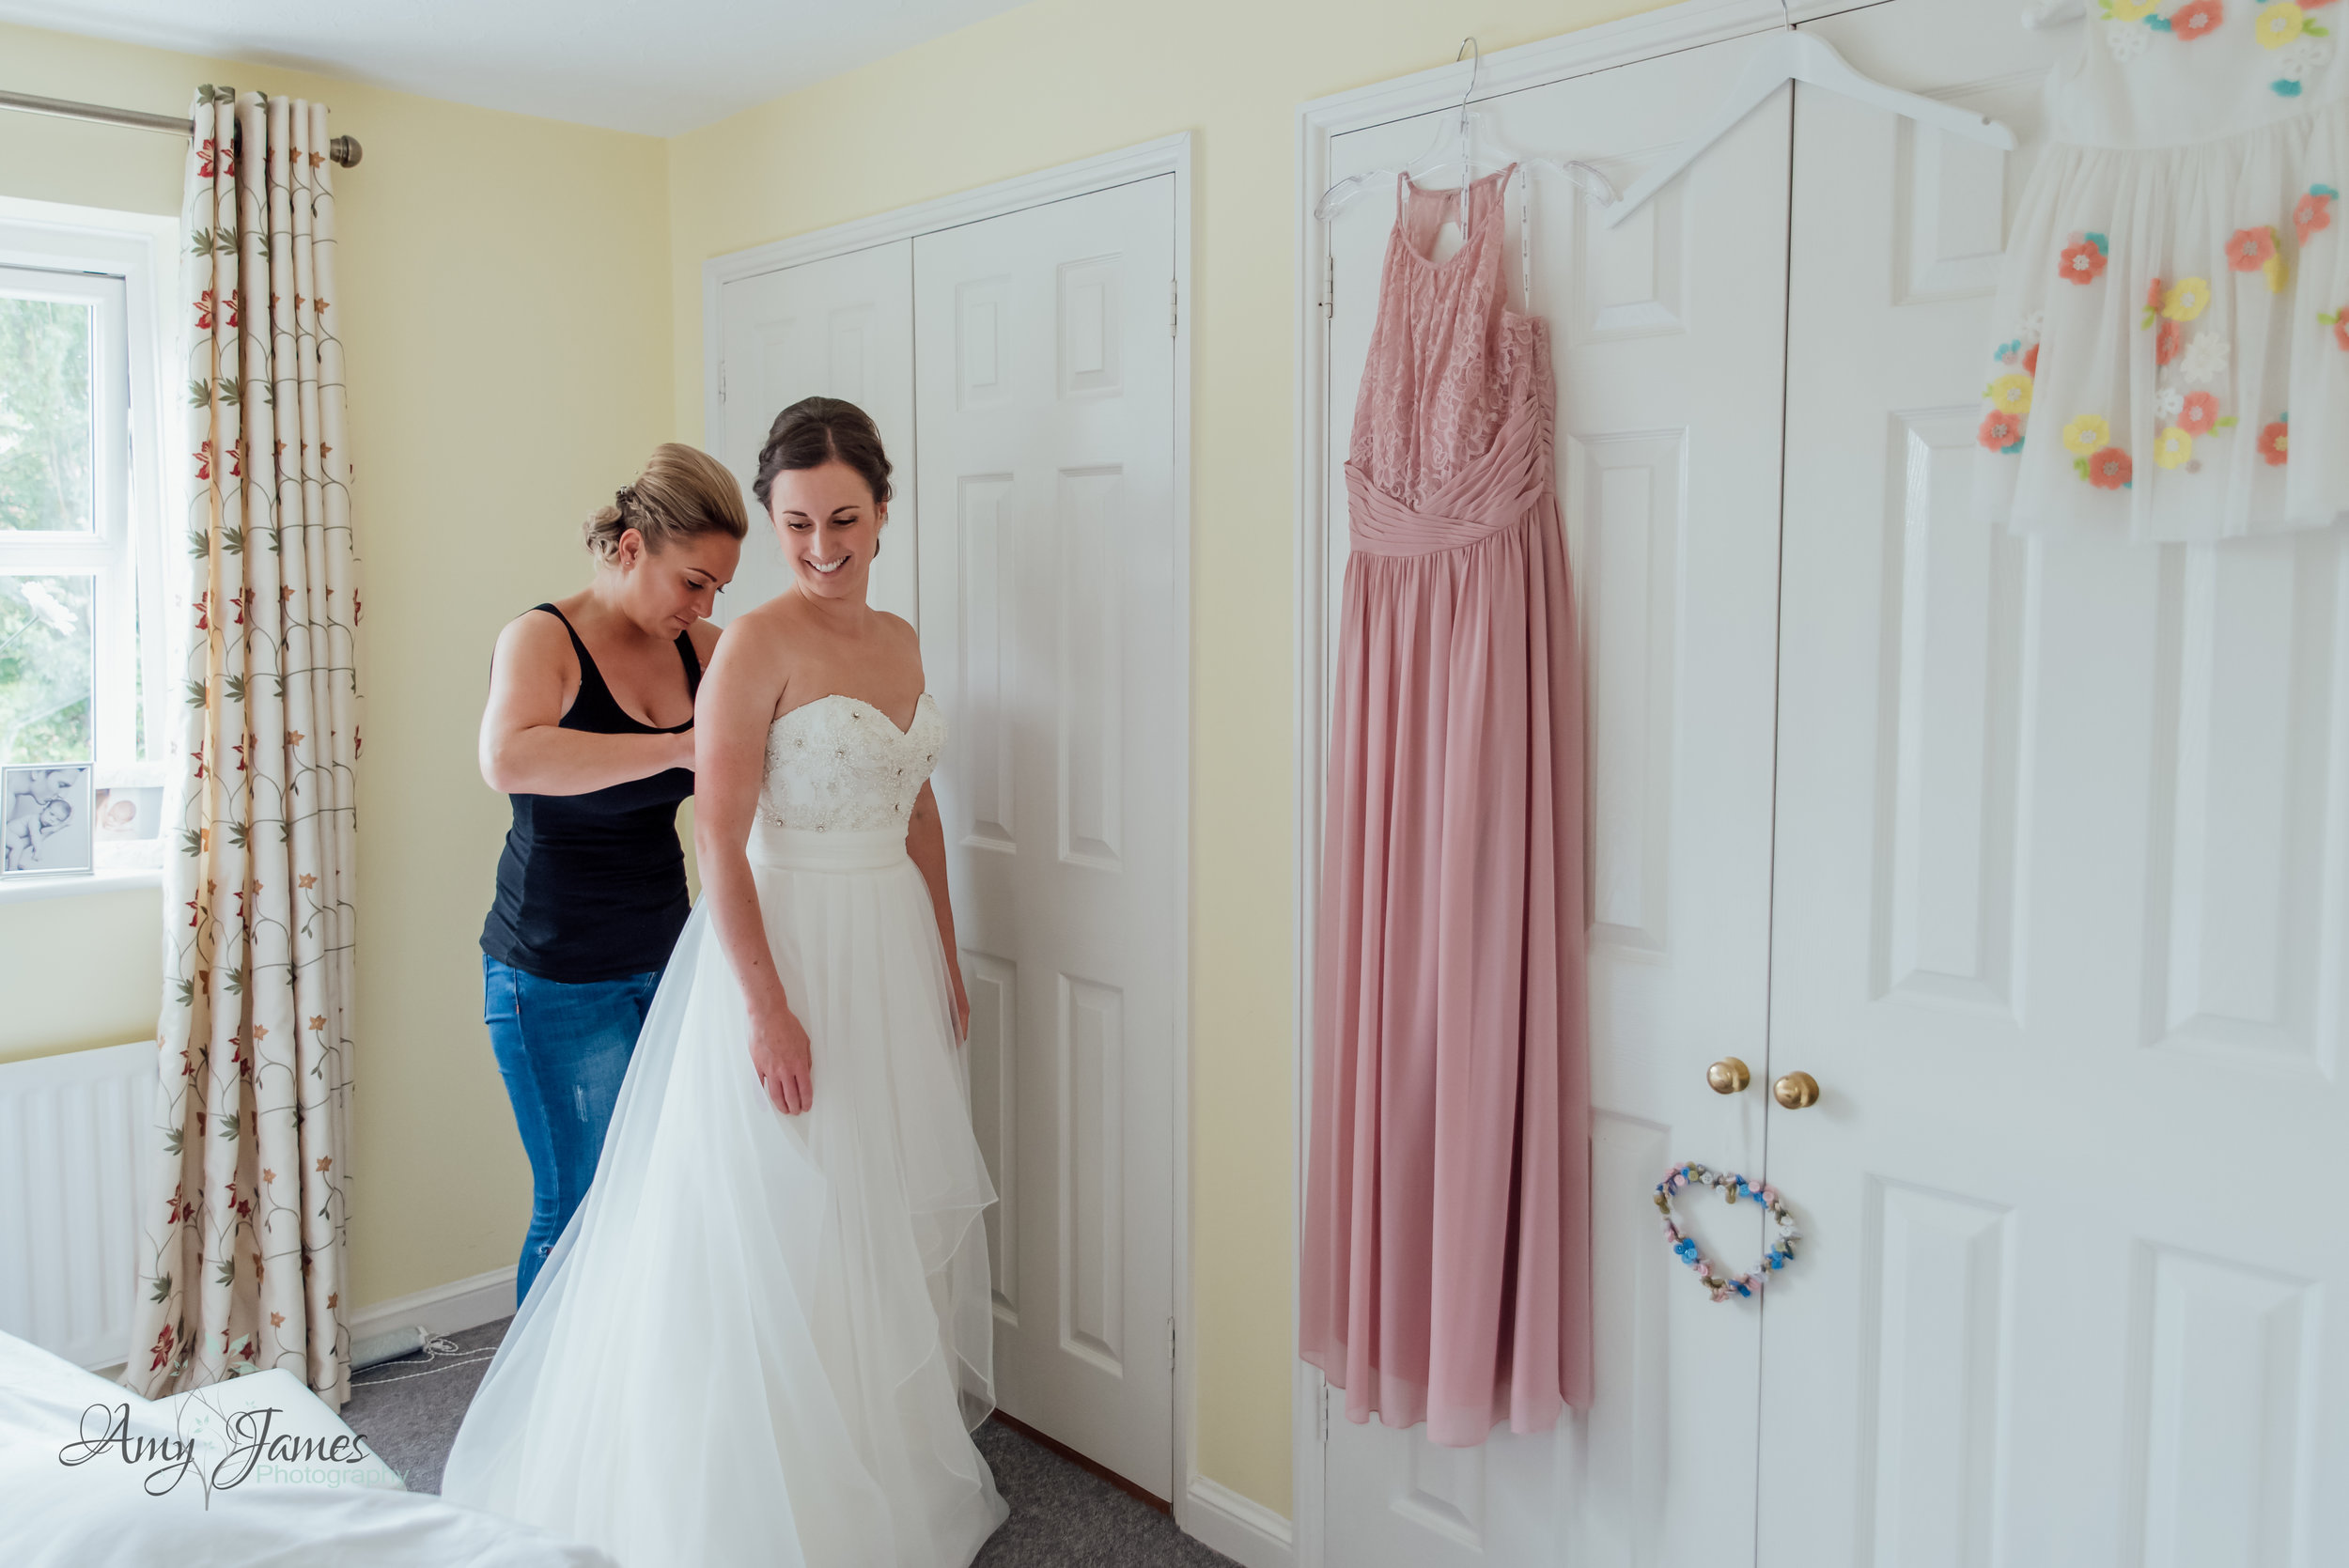 Brides sister helping her into her wedding dress - Amy James Photography - Taplins Place Wedding - Wedding photographer Hampshire